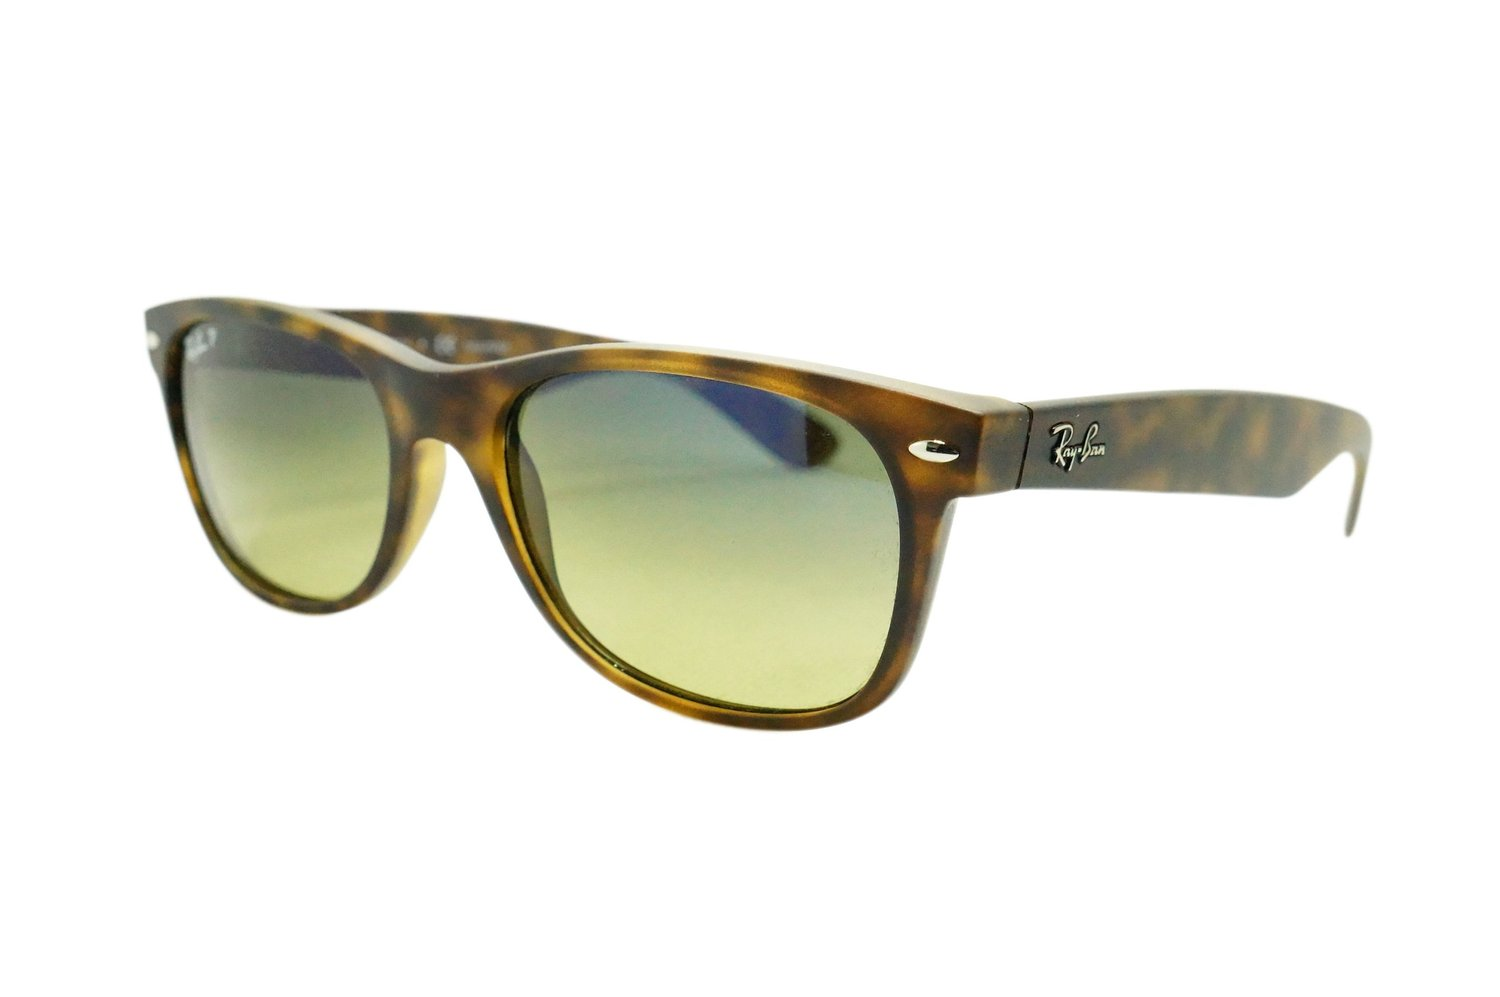 Ray-Ban New Wayfarer Sunglasses RB2132 622/19 Rubber Black Grey Mirror Green 52 18 145